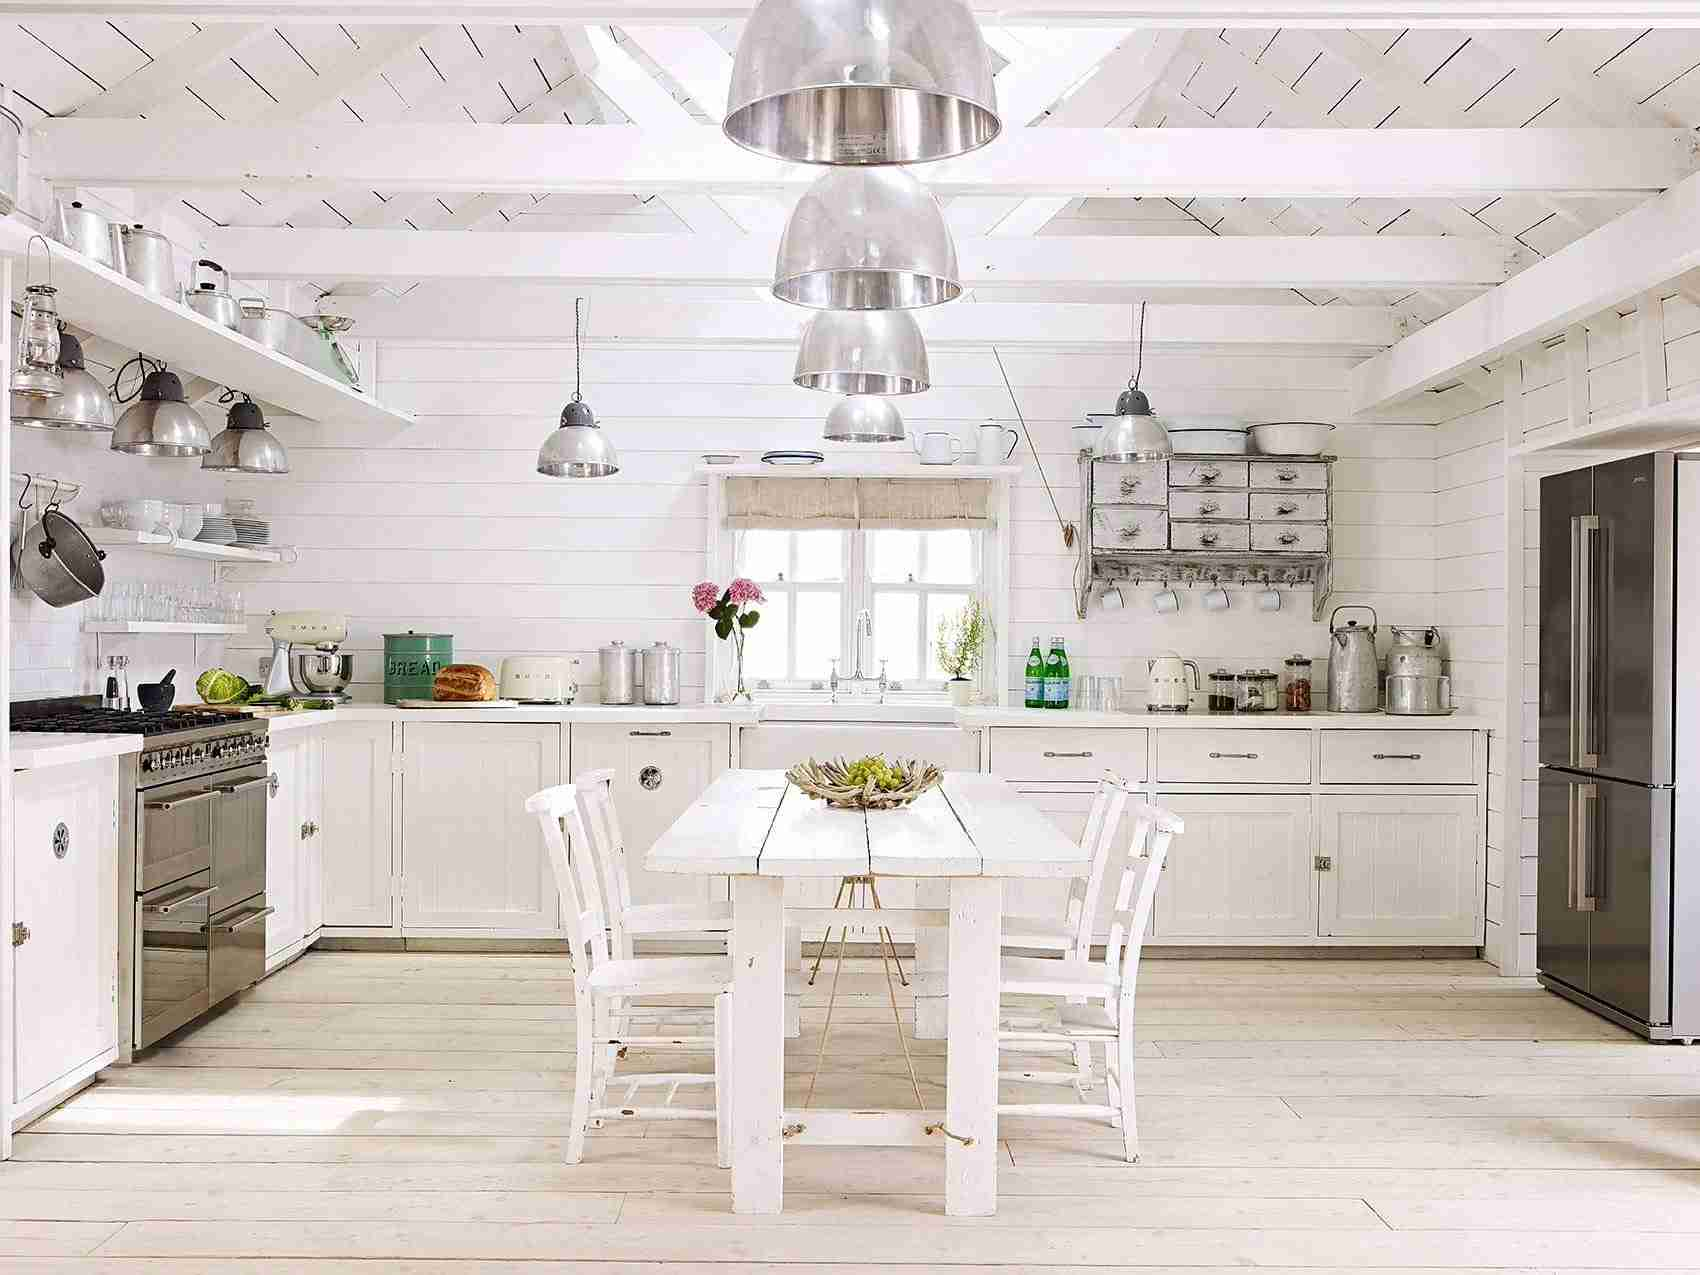 Solid Wood Kitchen Stylish Ideas for Modern Interiors. White colored Classic interior